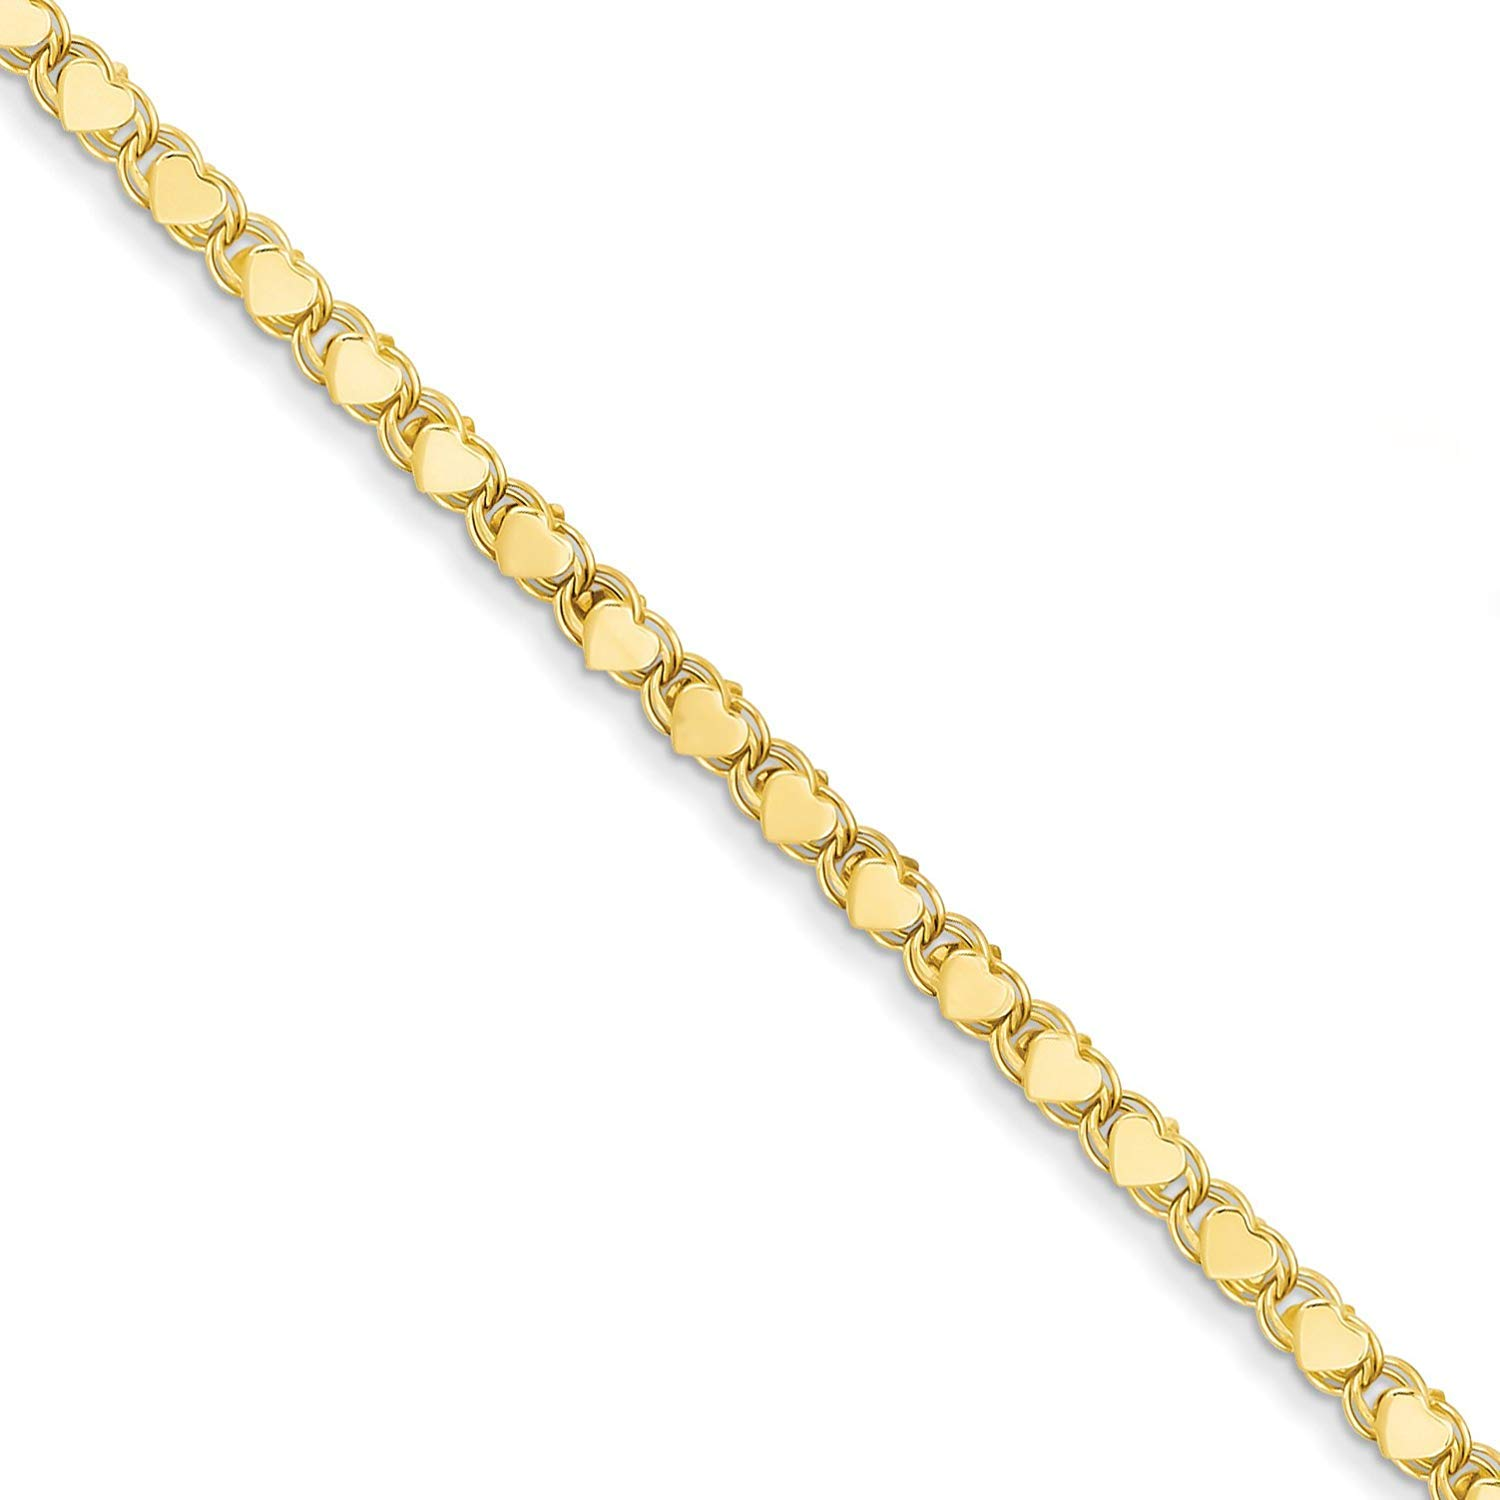 14K Yellow or White Gold 2.9mm Shiny Heart Chain Necklace or Bracelet Bangle or Anklet for Pendants and Charms with Lobster-Claw Clasp (5.5'' 7'', 10'', 16'', or 18 inch)